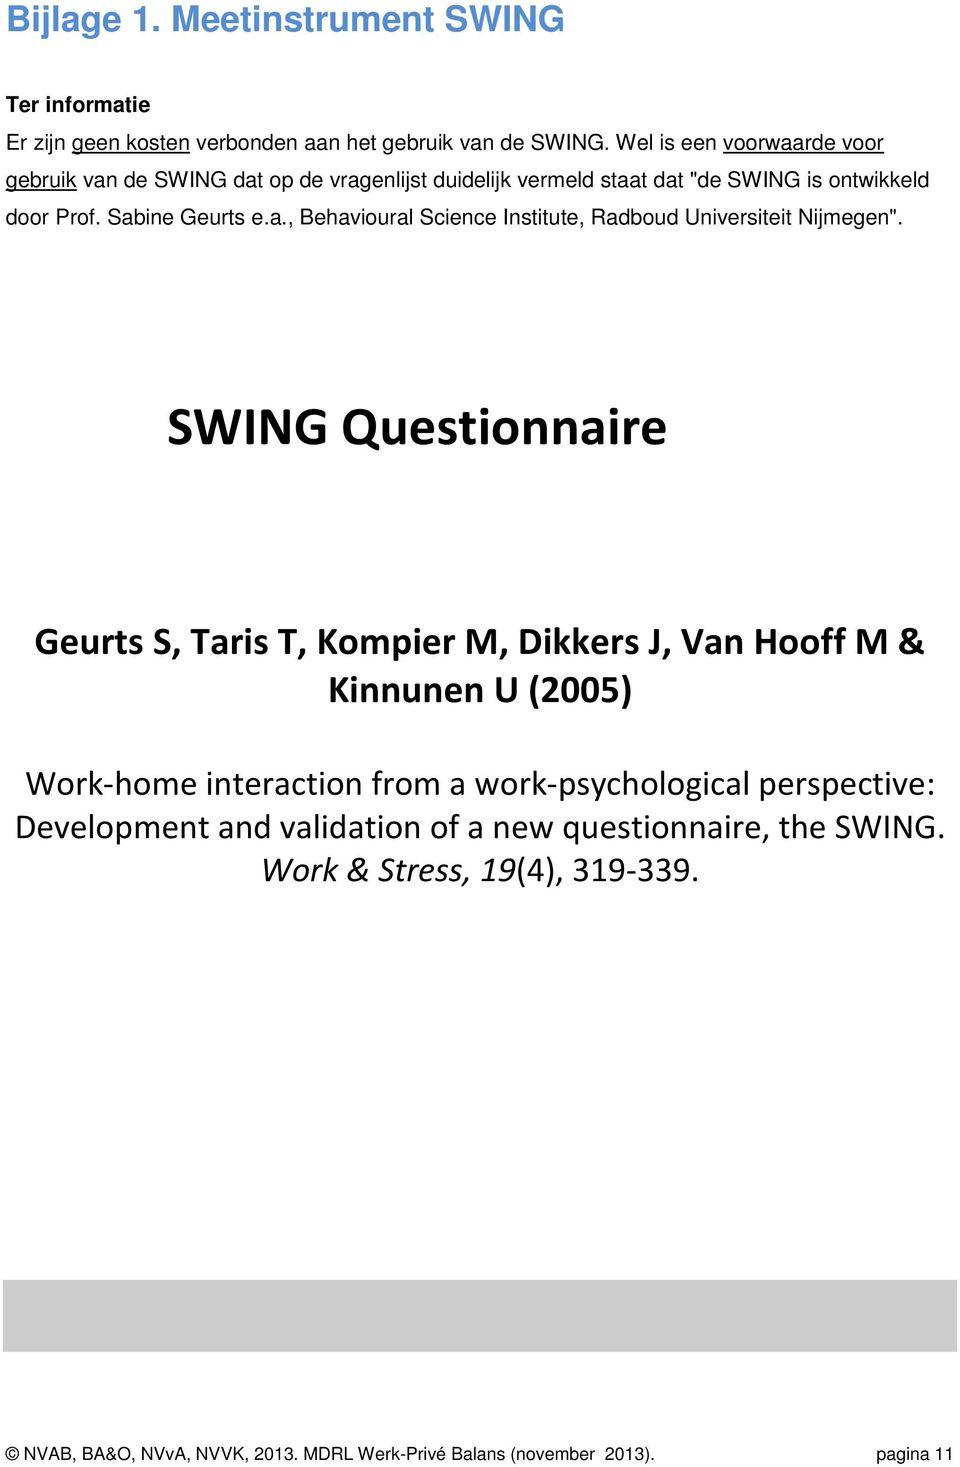 SWING Questionnaire Geurts S, Taris T, Kompier M, Dikkers J, Van Hooff M & Kinnunen U (2005) Work-home interaction from a work-psychological perspective: